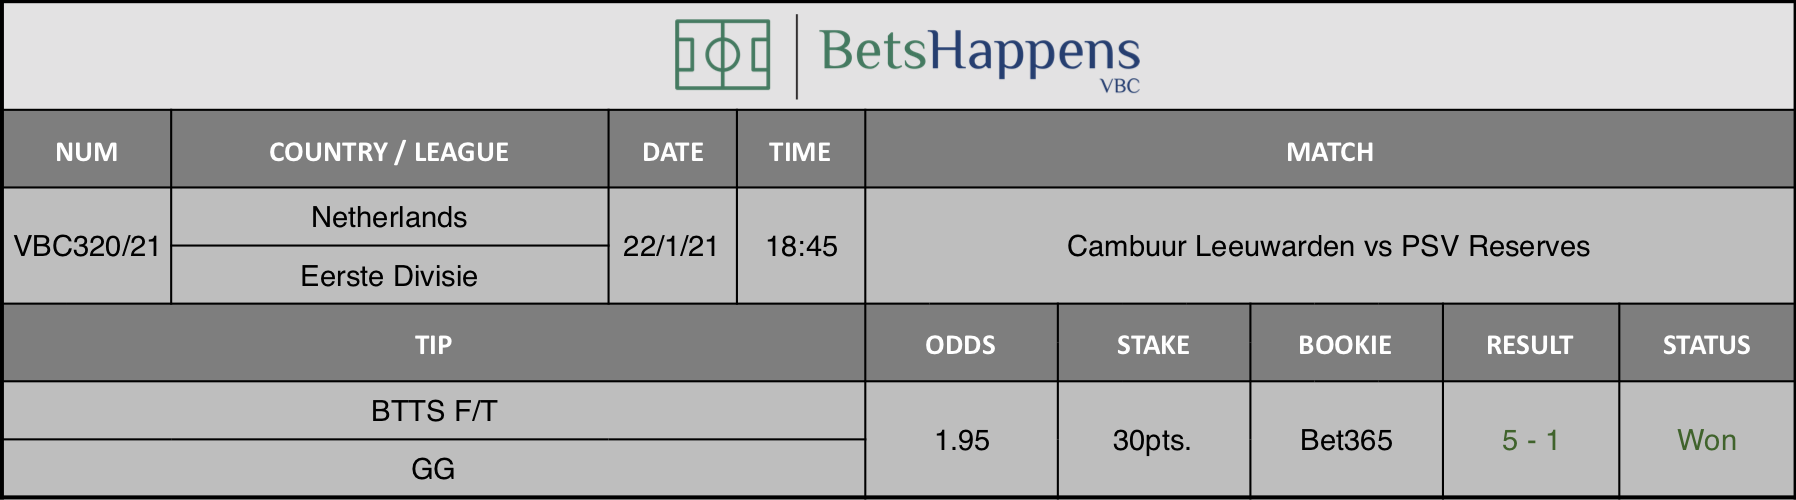 Results of our tip for the Cambuur Leeuwarden vs PSV Reserves match where BTTS F/T  GG is recommended.